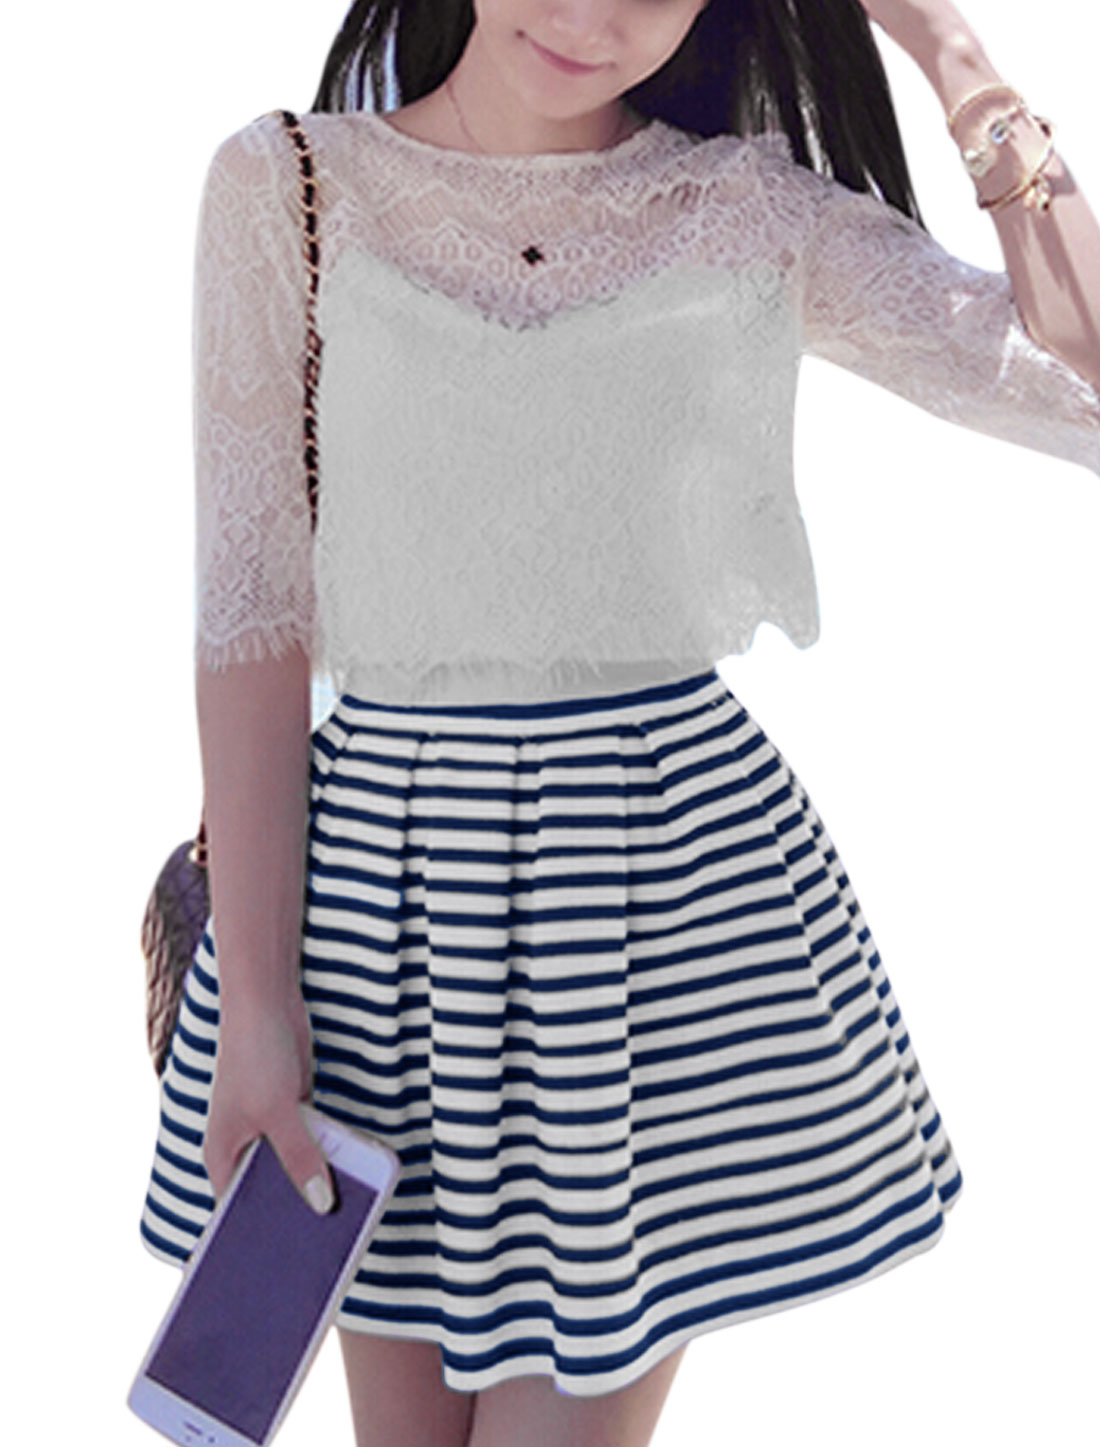 Woman Crop Cami Fringed Eyelash Lace Top w Stripes Skirt Sets White Dark Blue M